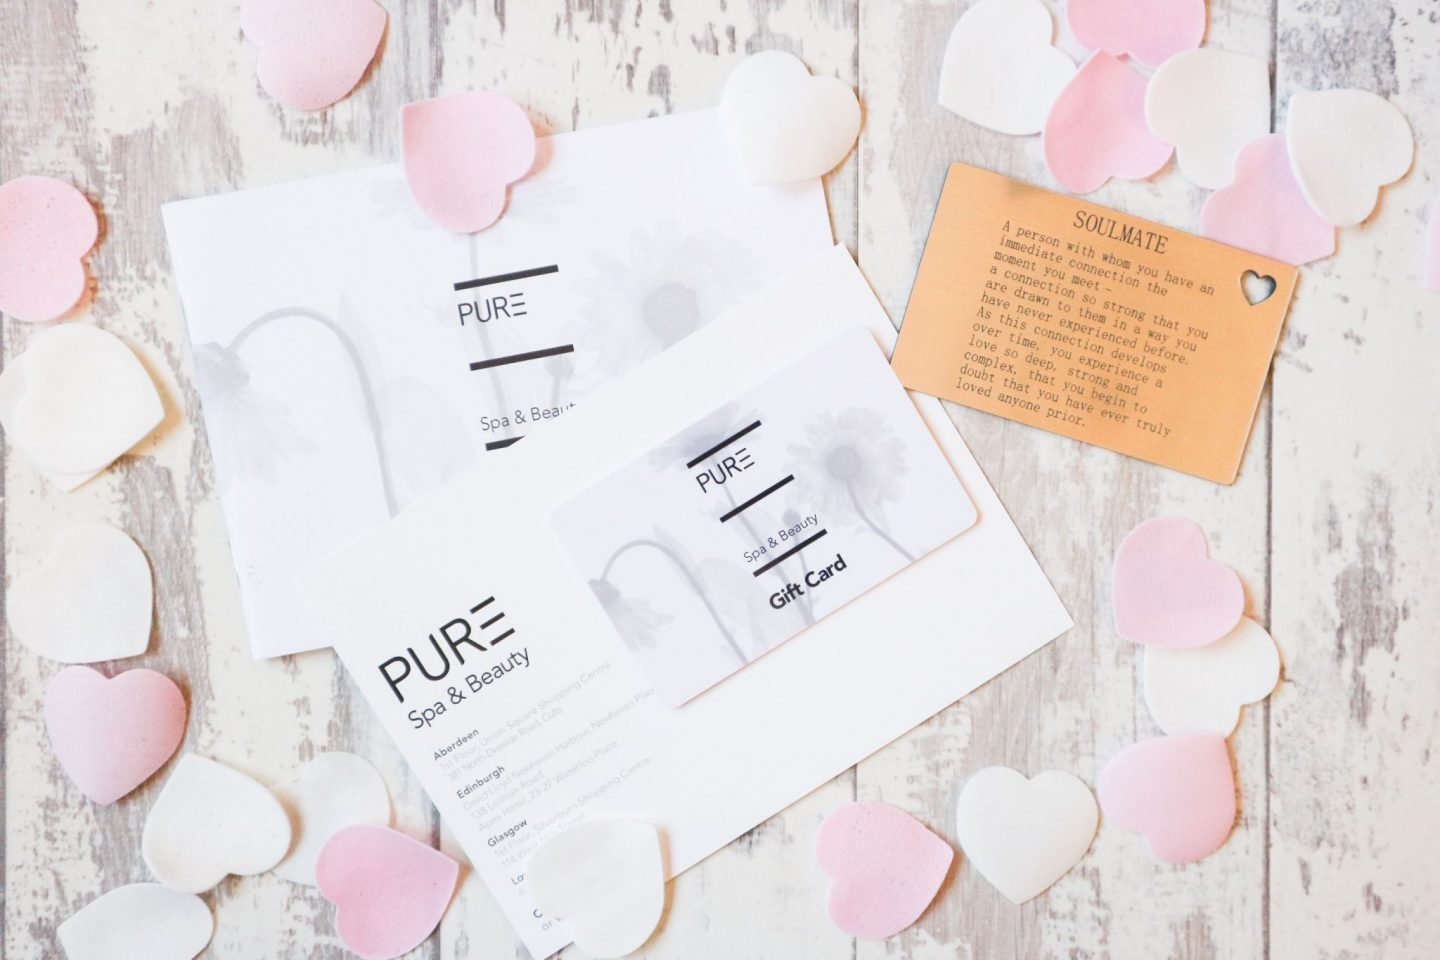 pure spa voucher